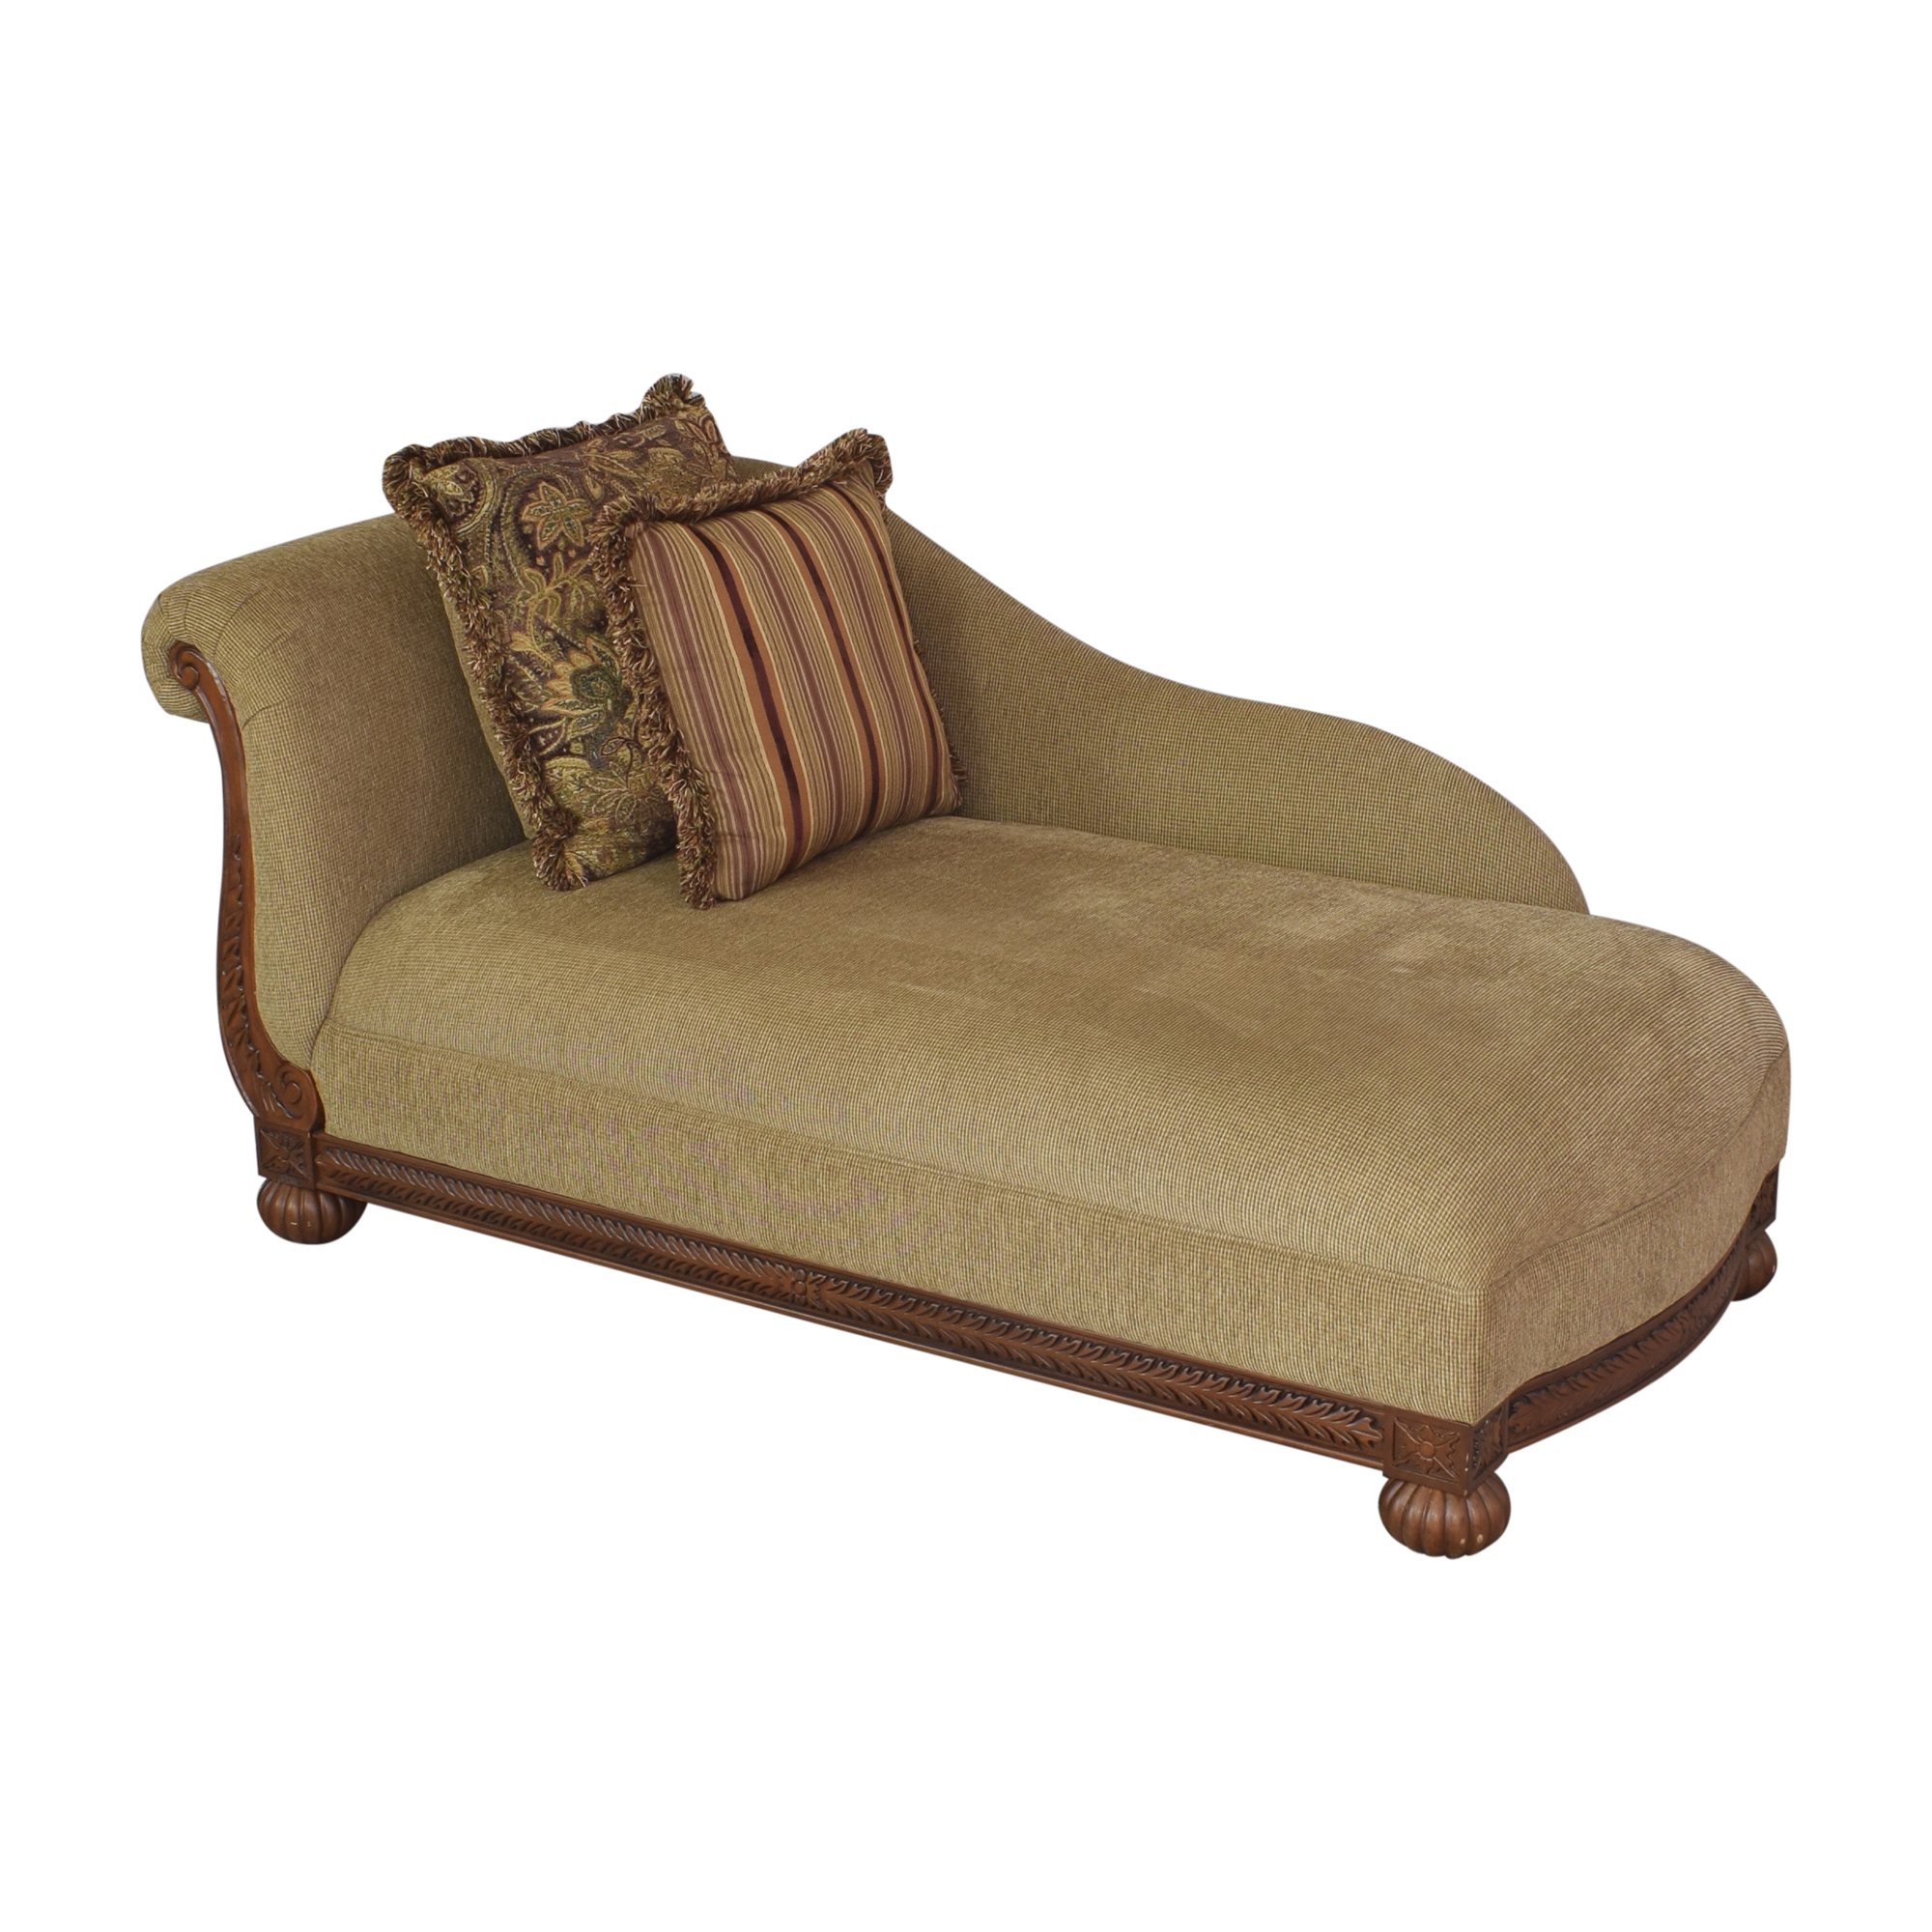 shop Raymour & Flanigan Rolled Back Chaise Raymour & Flanigan Chaises